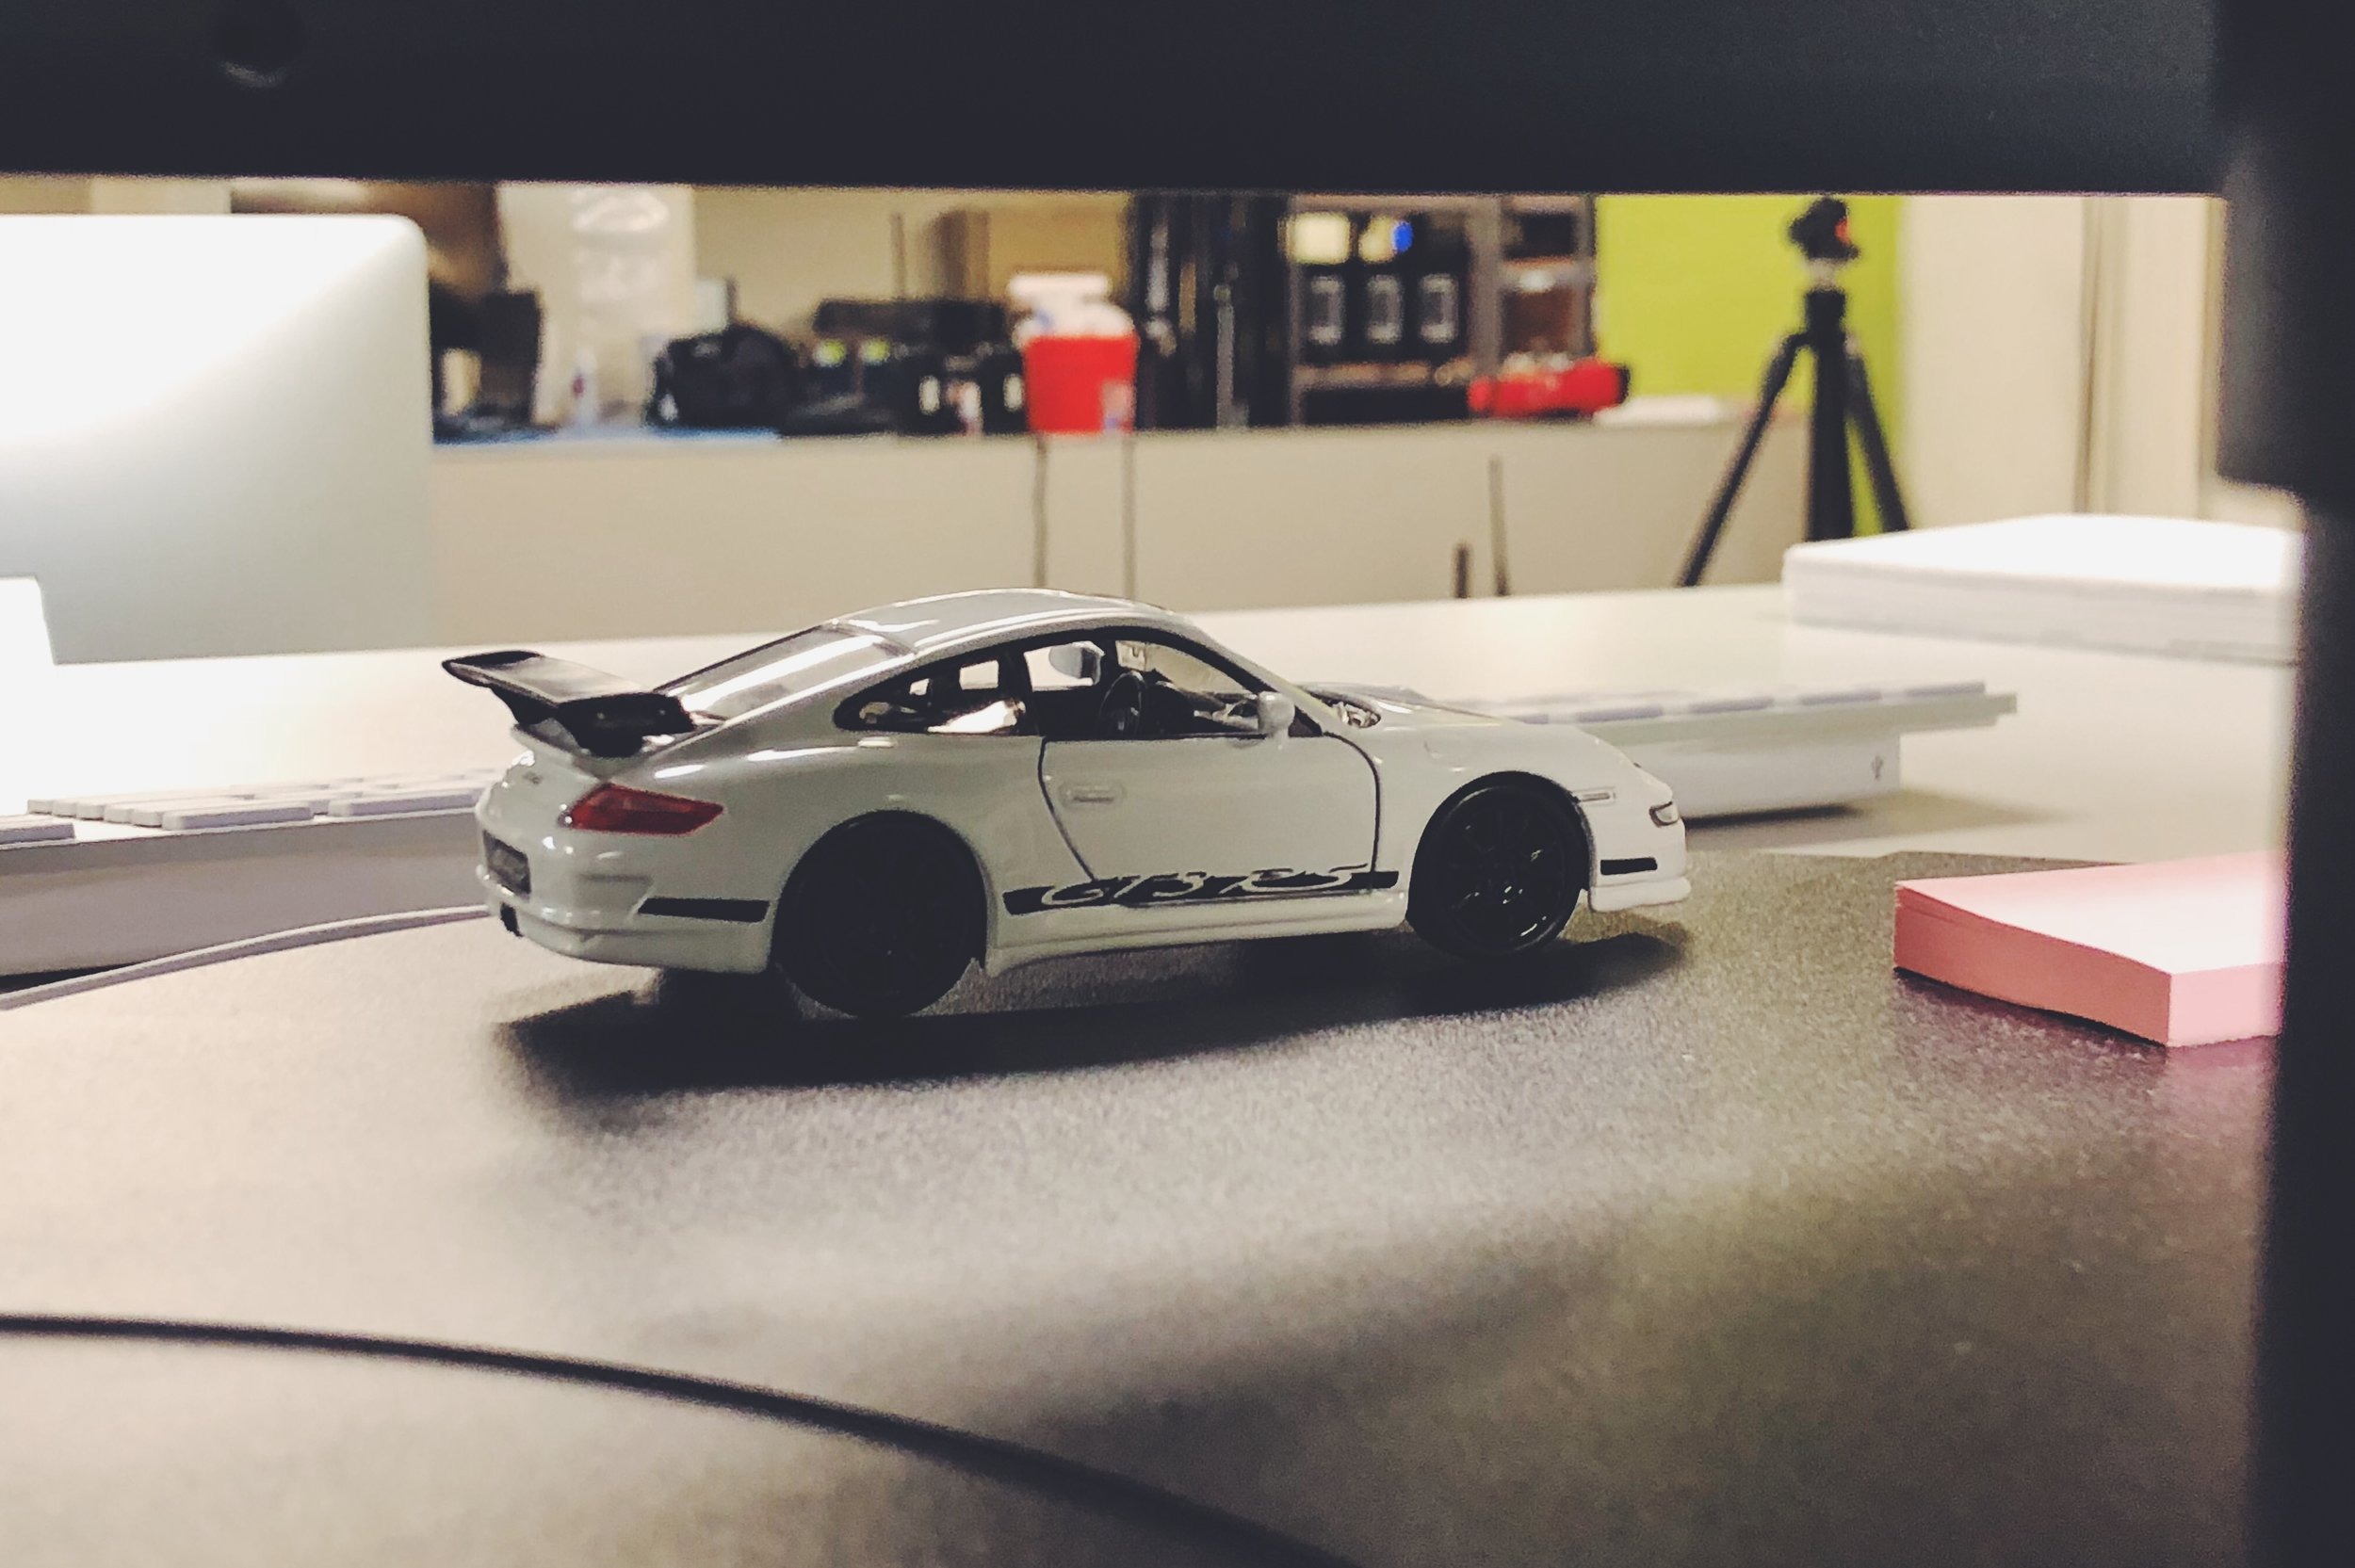 Got a white one as well, in the only size of Porsche I can afford.